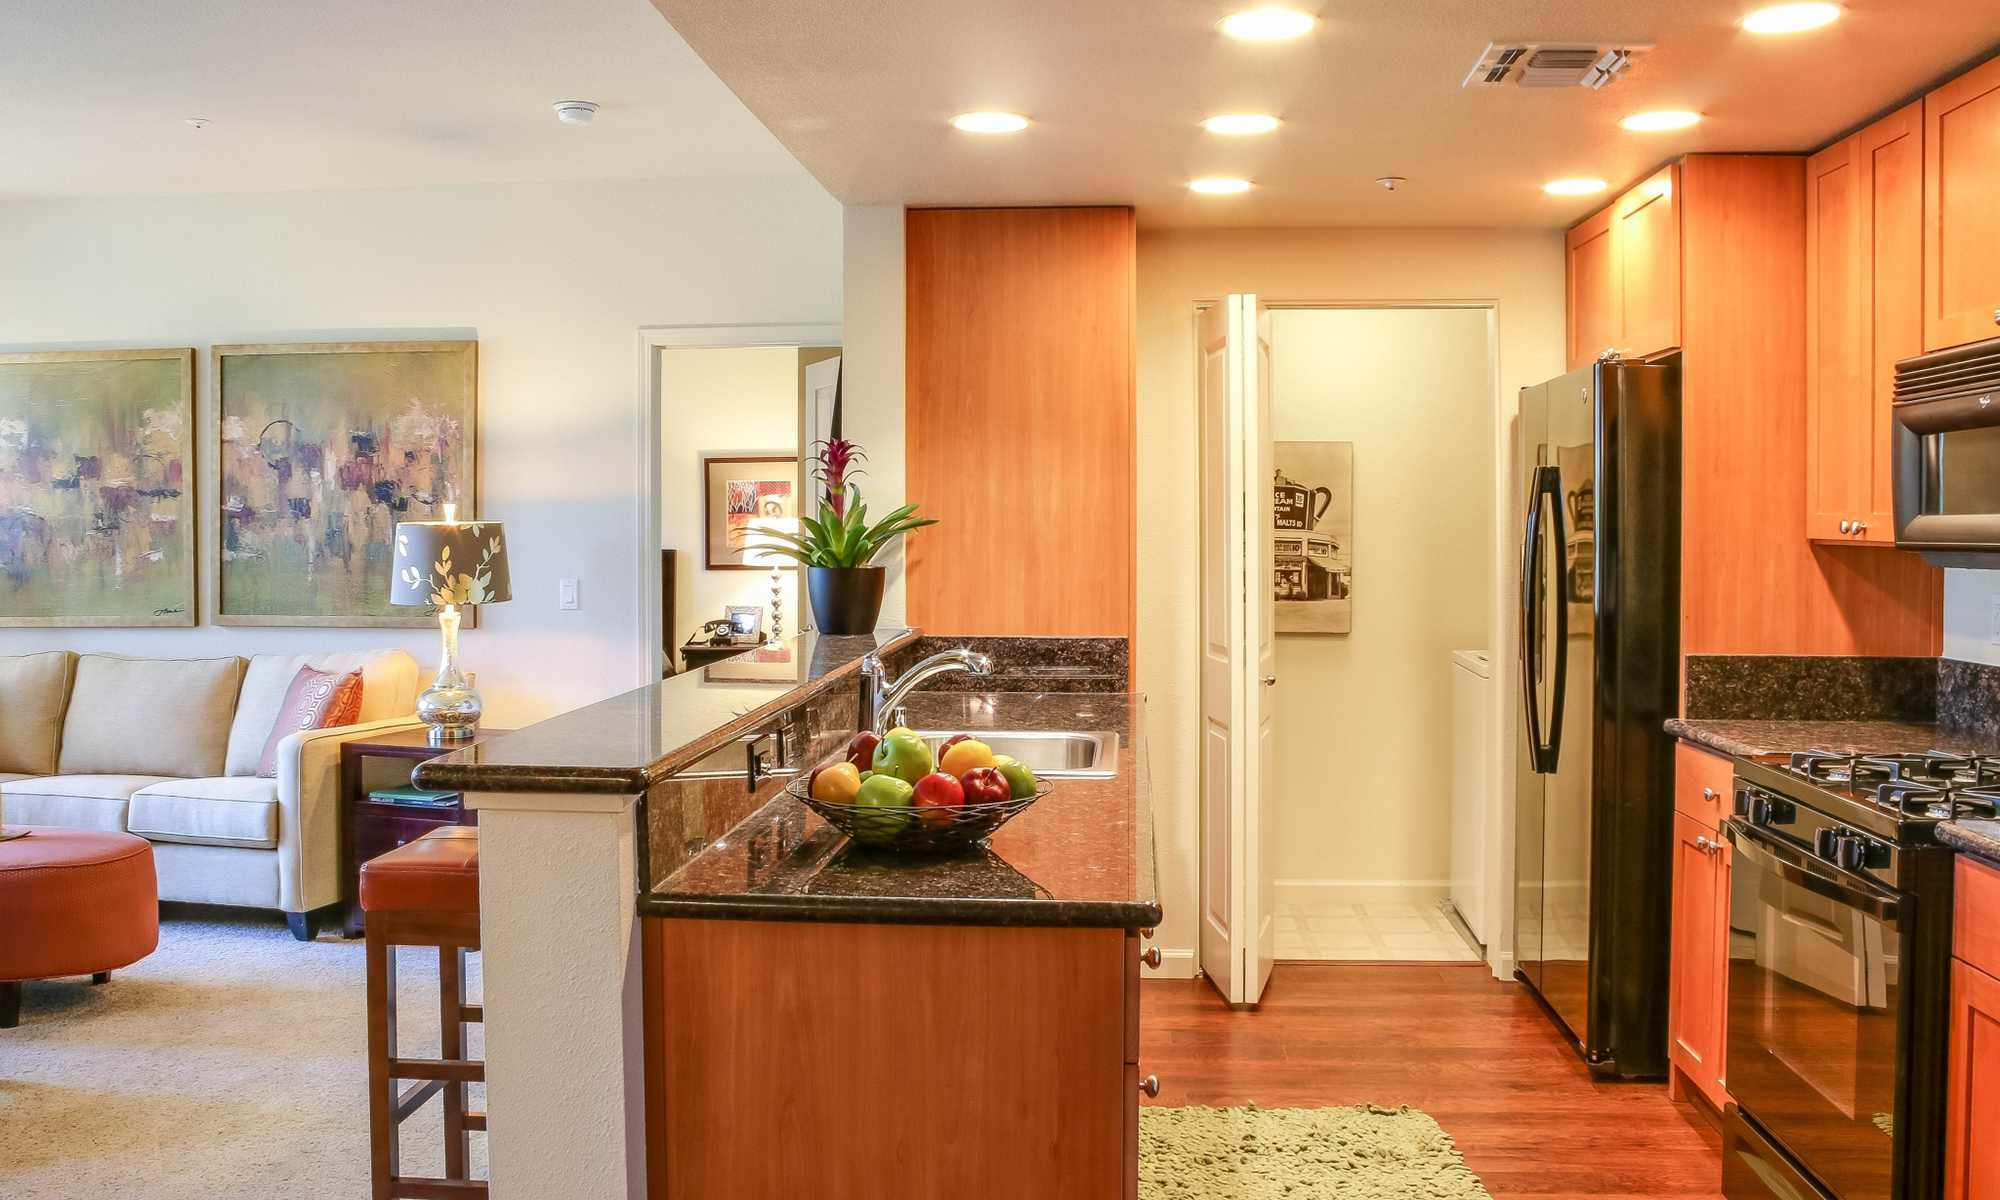 Santa Rosa Apartments have Modern Kitchens